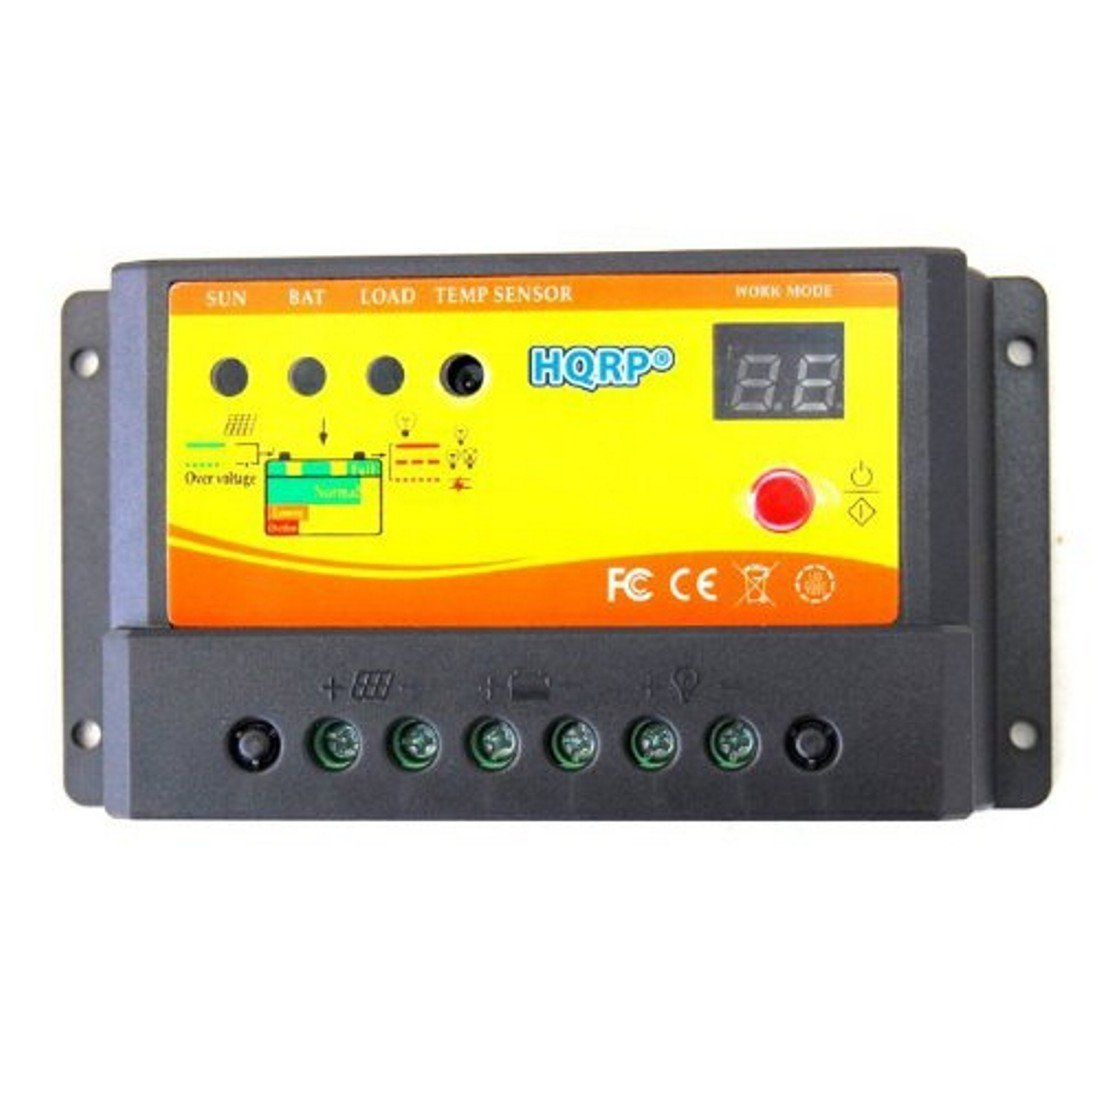 HQRP Solar Power Controller 10Amp 150W with Digital LED Display plus HQRP UV Meter